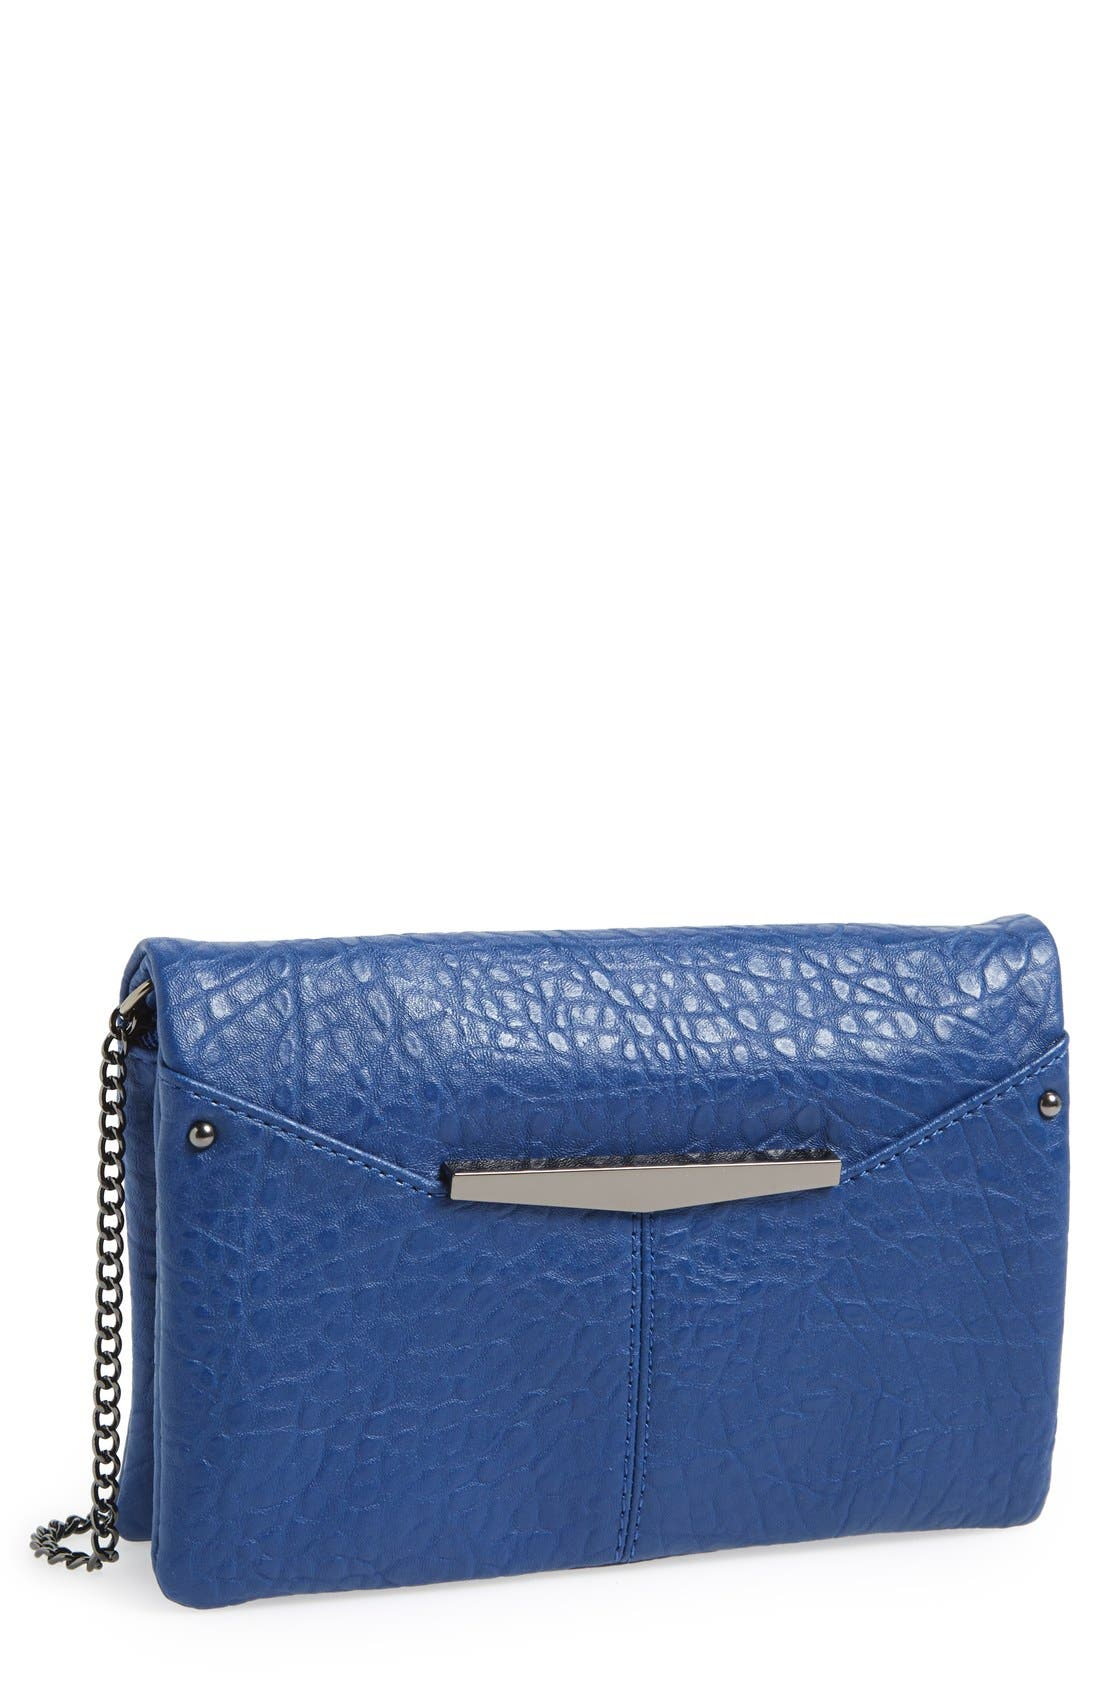 Alternate Image 1 Selected - Danielle Nicole 'Libby' Convertible Crossbody Bag